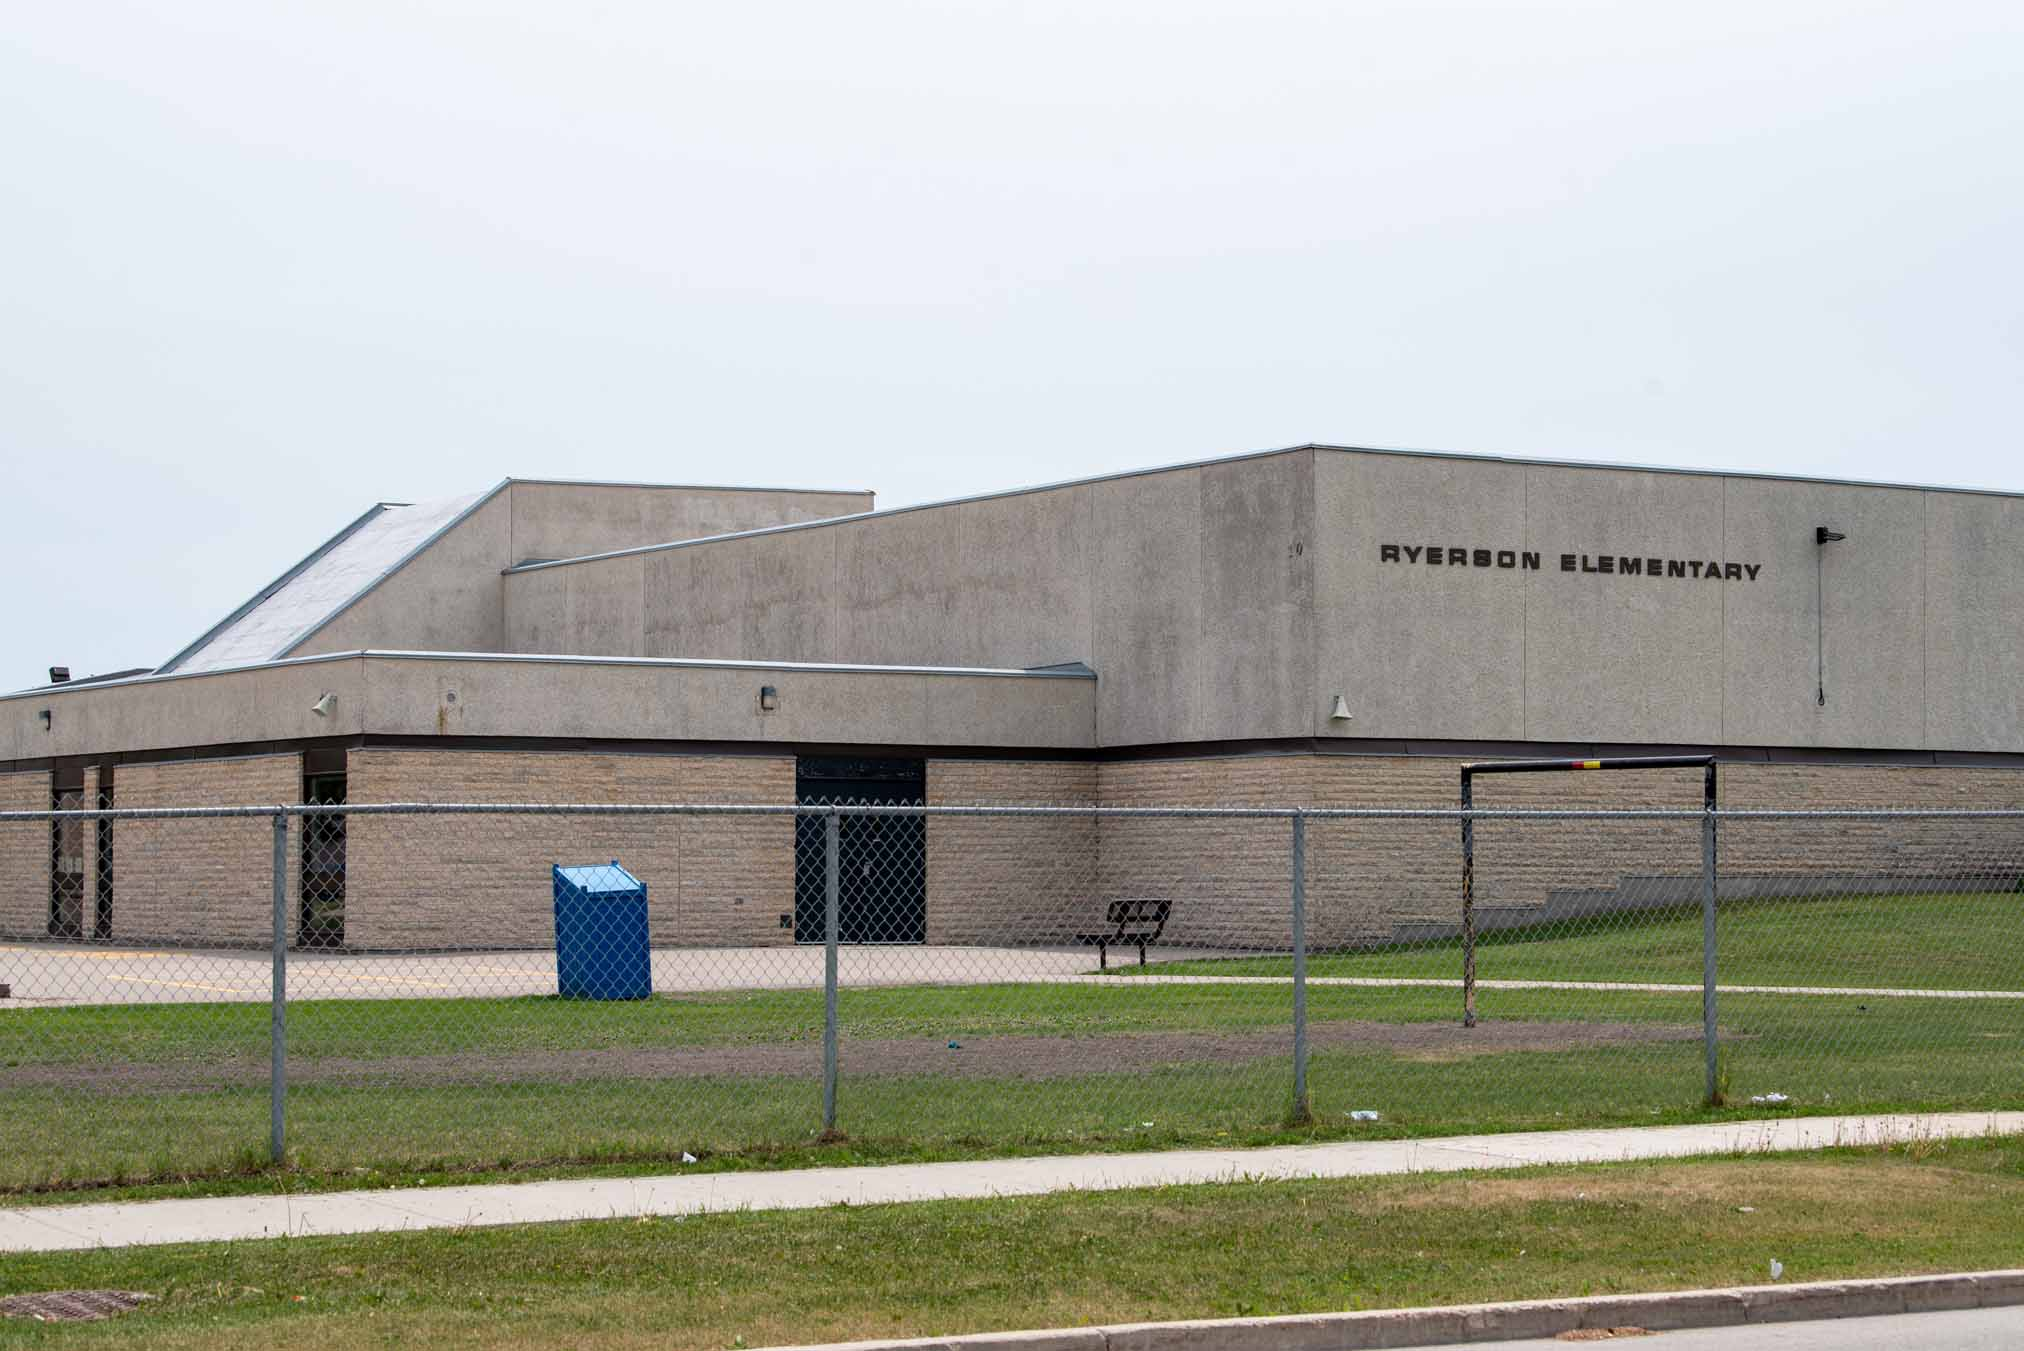 A similar process is currently underway in south Winnipeg to rename Ryerson School in the Pembina Trails School Division